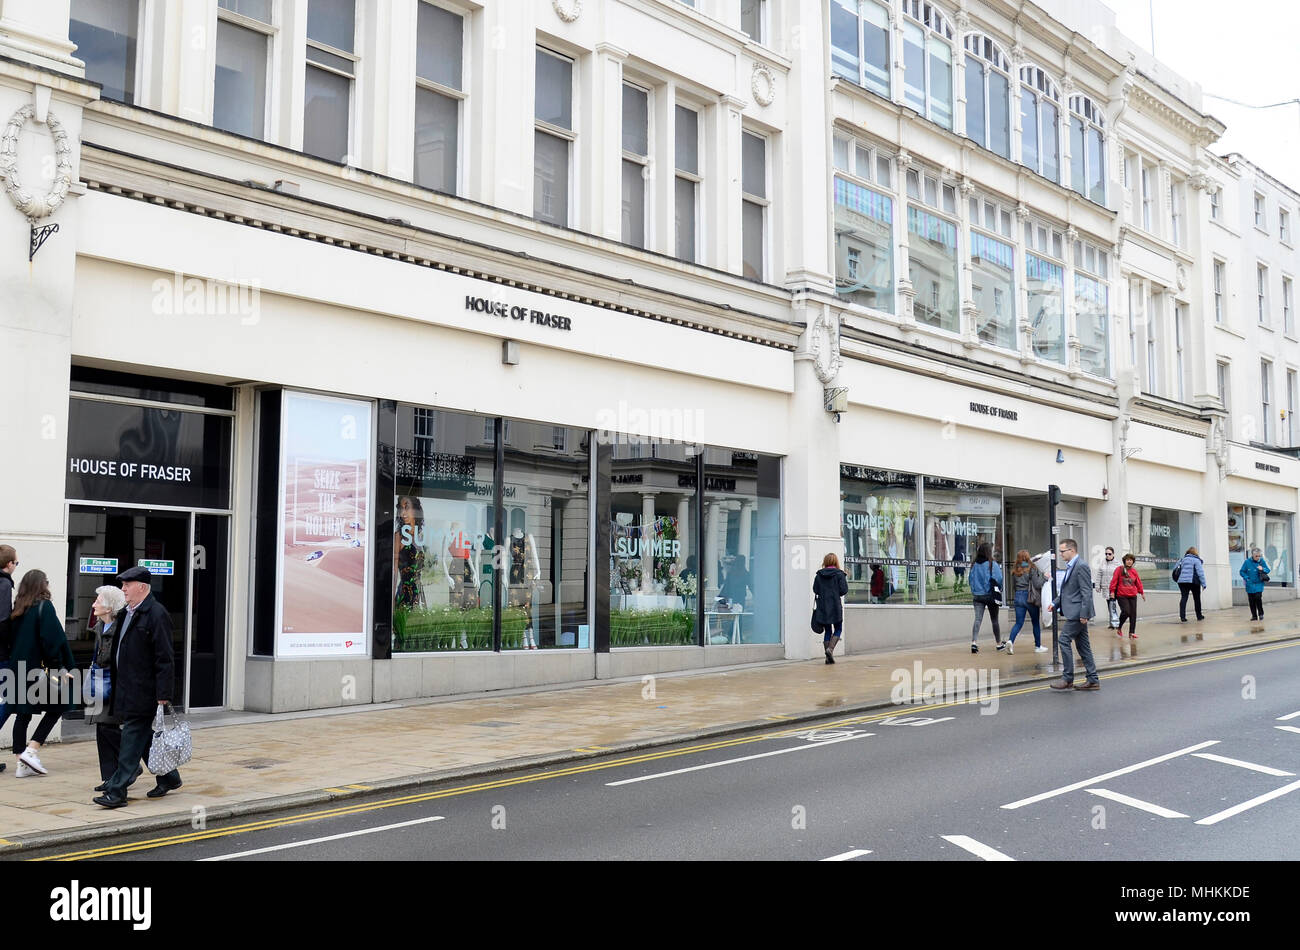 House of Fraser, Leamington Spa, UK, one of 31 stores due for closure. House of Fraser announces store closures, a Company Voluntary Arrangement, and a new majority owner in latest restructuring plan. Hundreds of jobs are at stake throughout the chain's 59 stores. CBanner, a Chinese retail business which owns Hamleys, will take a new 51% stake, with former Chinese majority shareholders Nanjing Cenbest retaining a minority share.  i Credit: Antony Nettle/Alamy Live News Credit: Antony Nettle/Alamy Live News Credit: Antony Nettle/Alamy Live News Credit: Antony Nettle/Alamy Live News - Stock Image